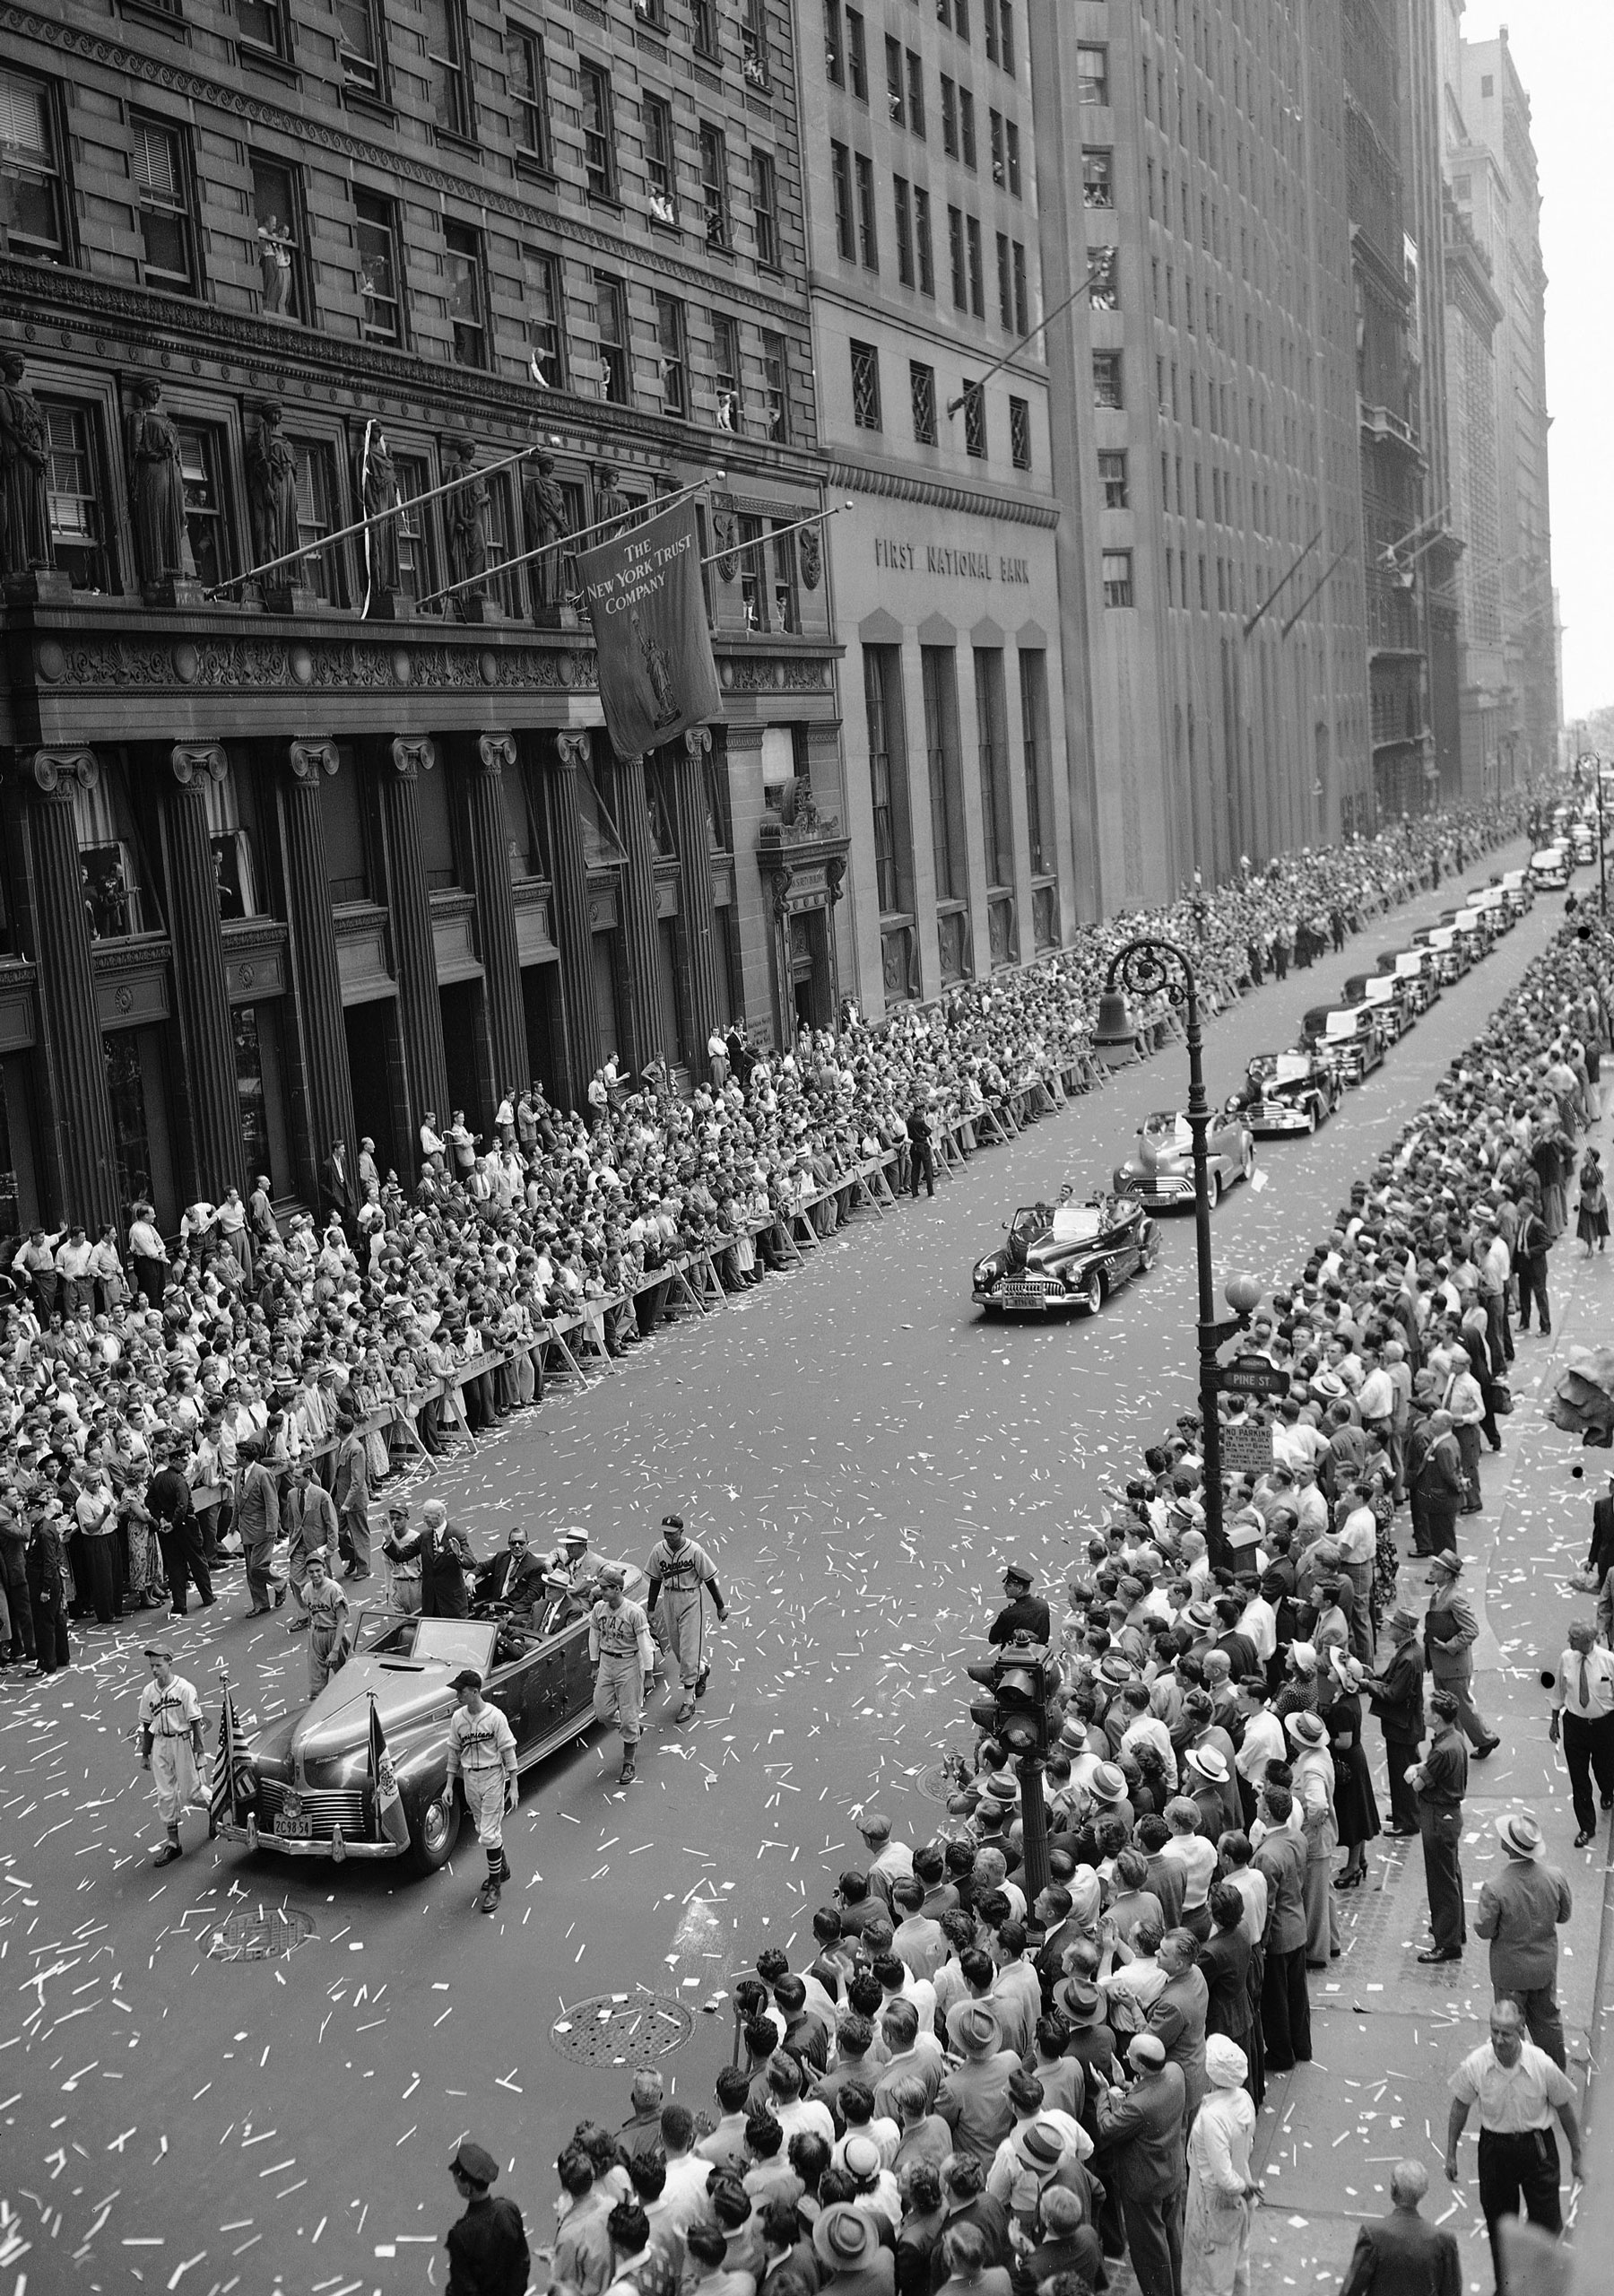 Baseball's Connie Mack stands up in a car to acknowledge the cheers of New Yorkers lining lower Broadway, New York City, on Aug. 19, 1949.